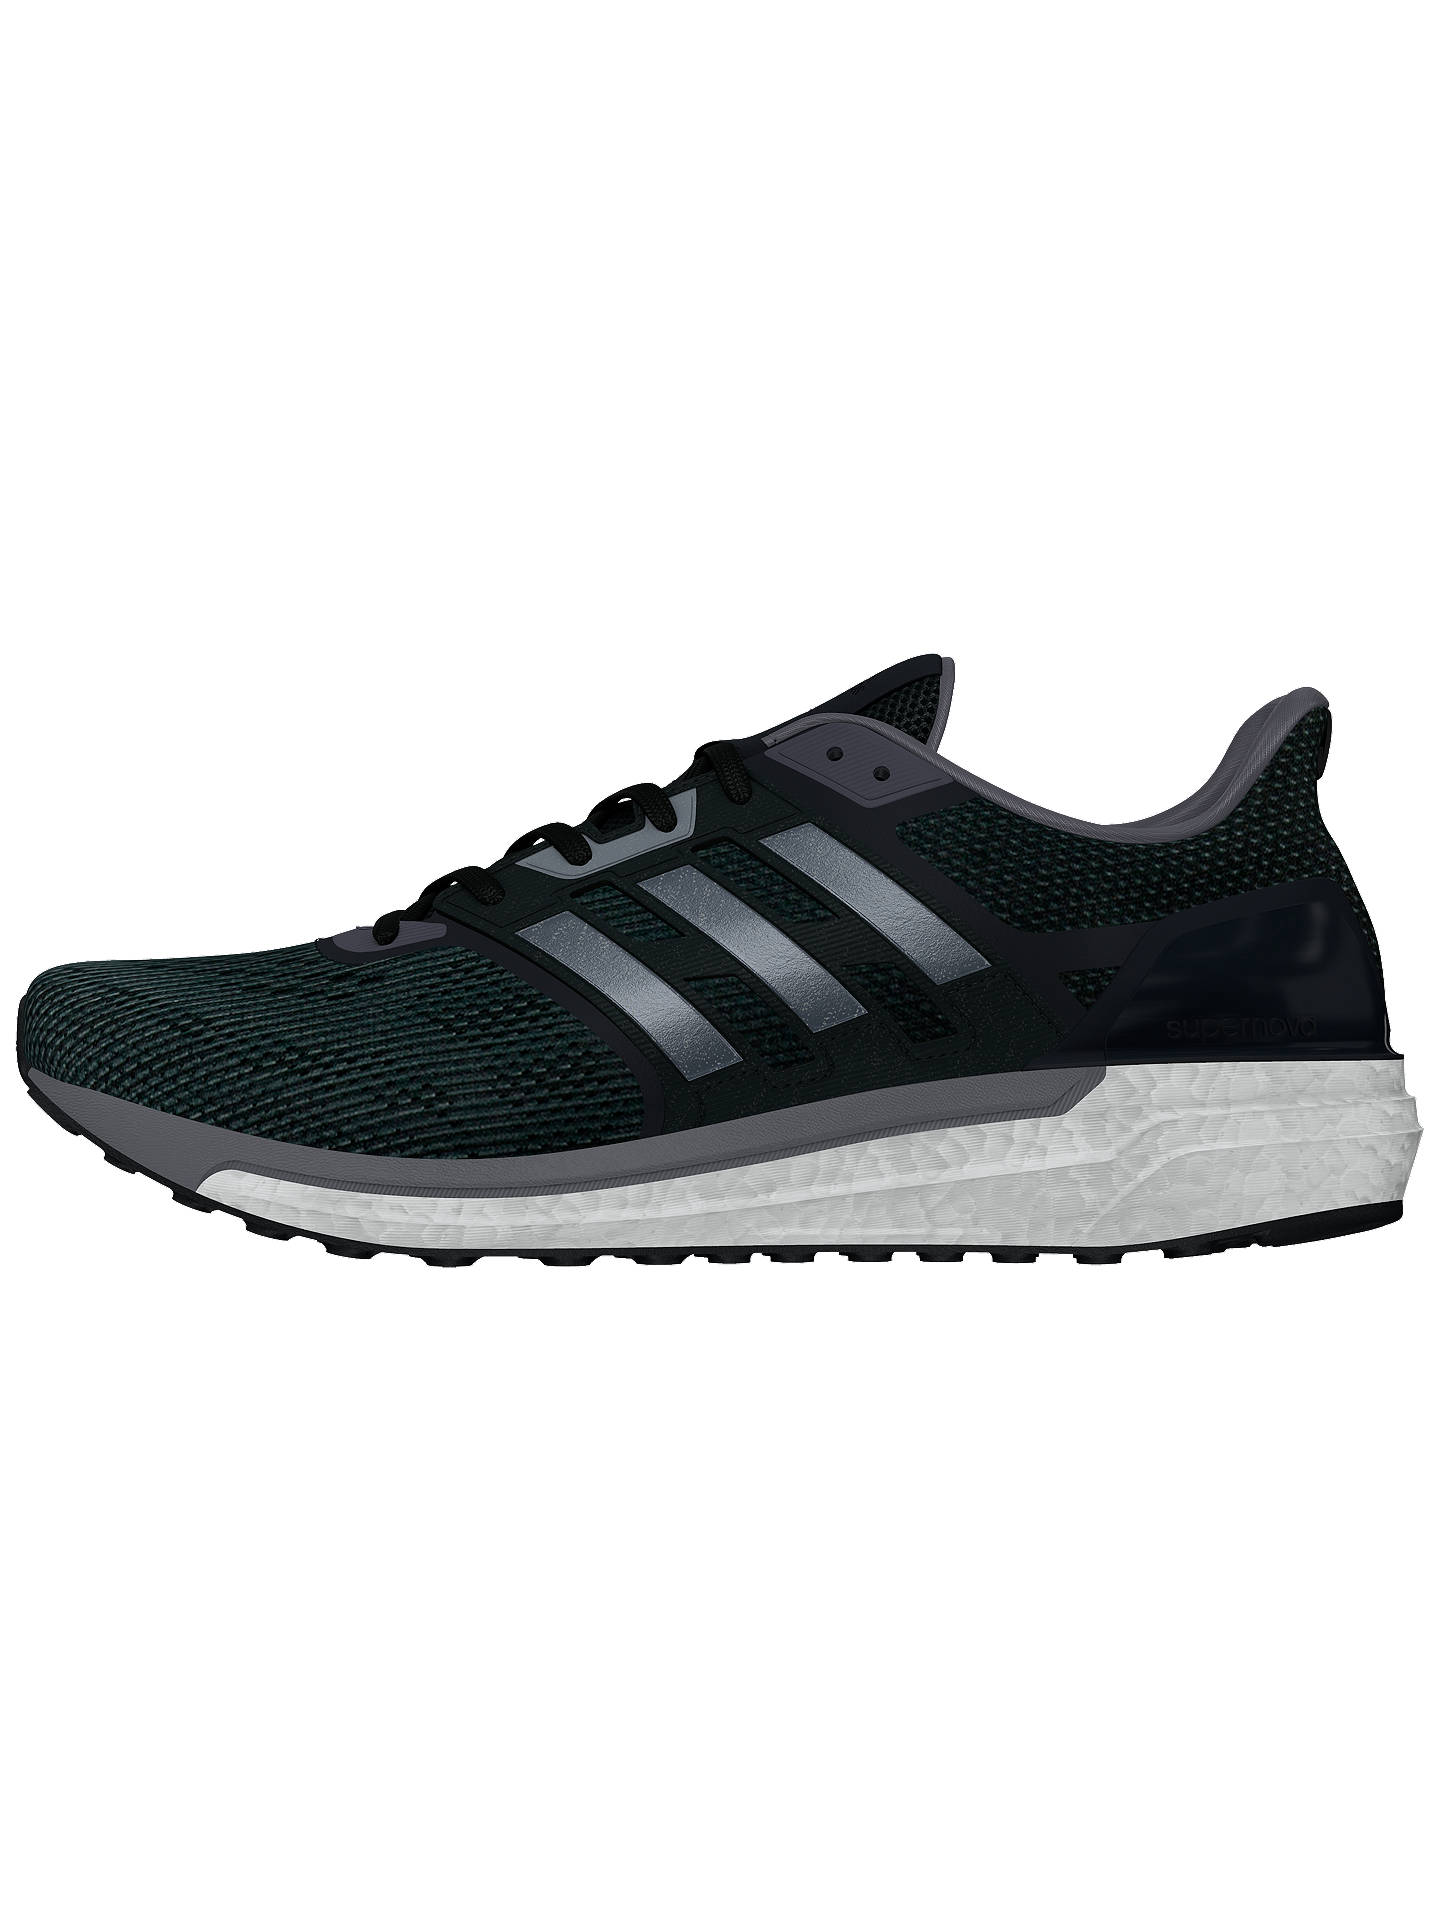 891da4f63cea6 Buy adidas Supernova Men s Running Shoes